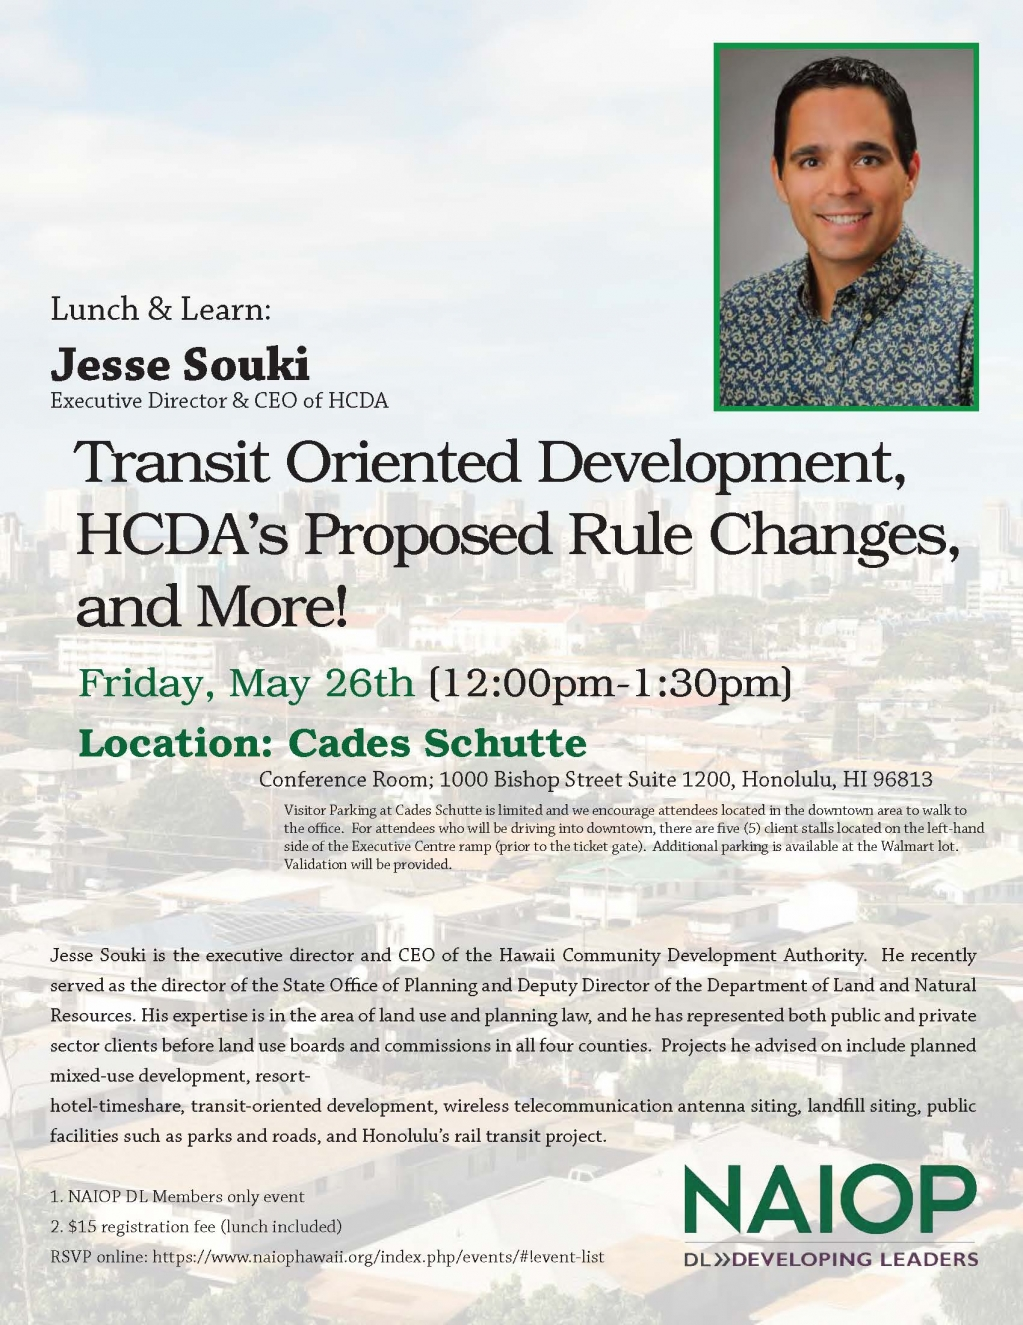 NAIOP Hawaii DL Member's Only Lunch & Learn - Transit Oriented